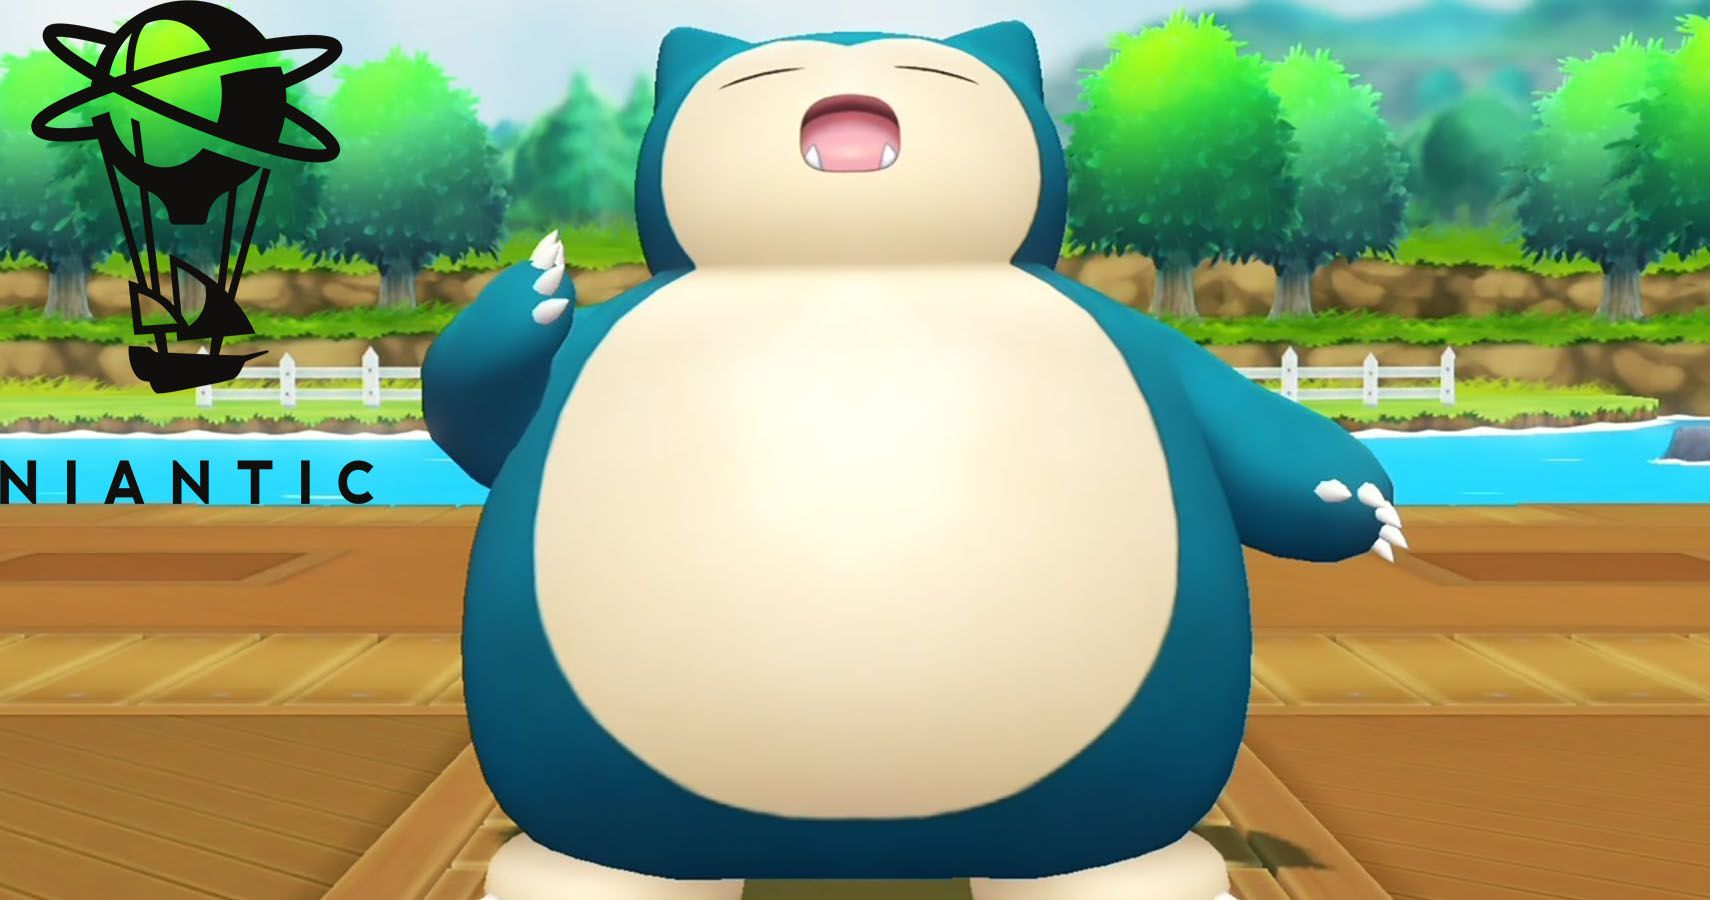 Pokémon Go Dev Giving All Employees A Week Off For Wellness